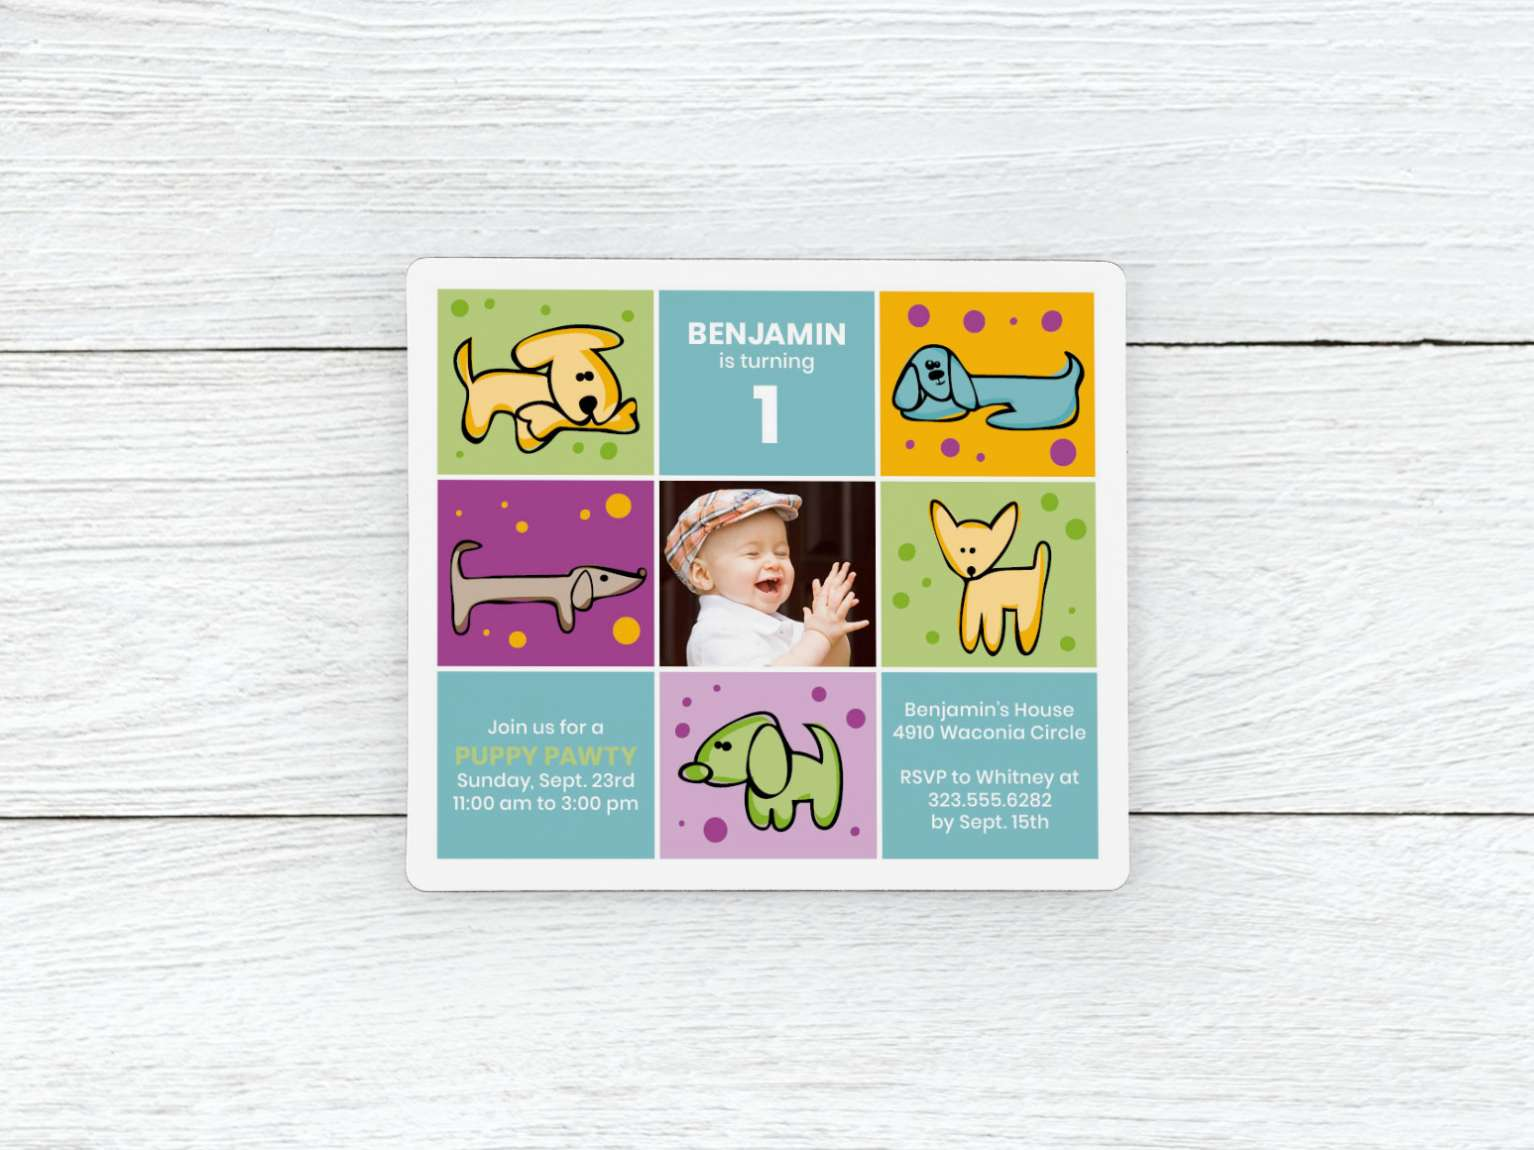 Puppy Pawty Magnets Included Envelopes